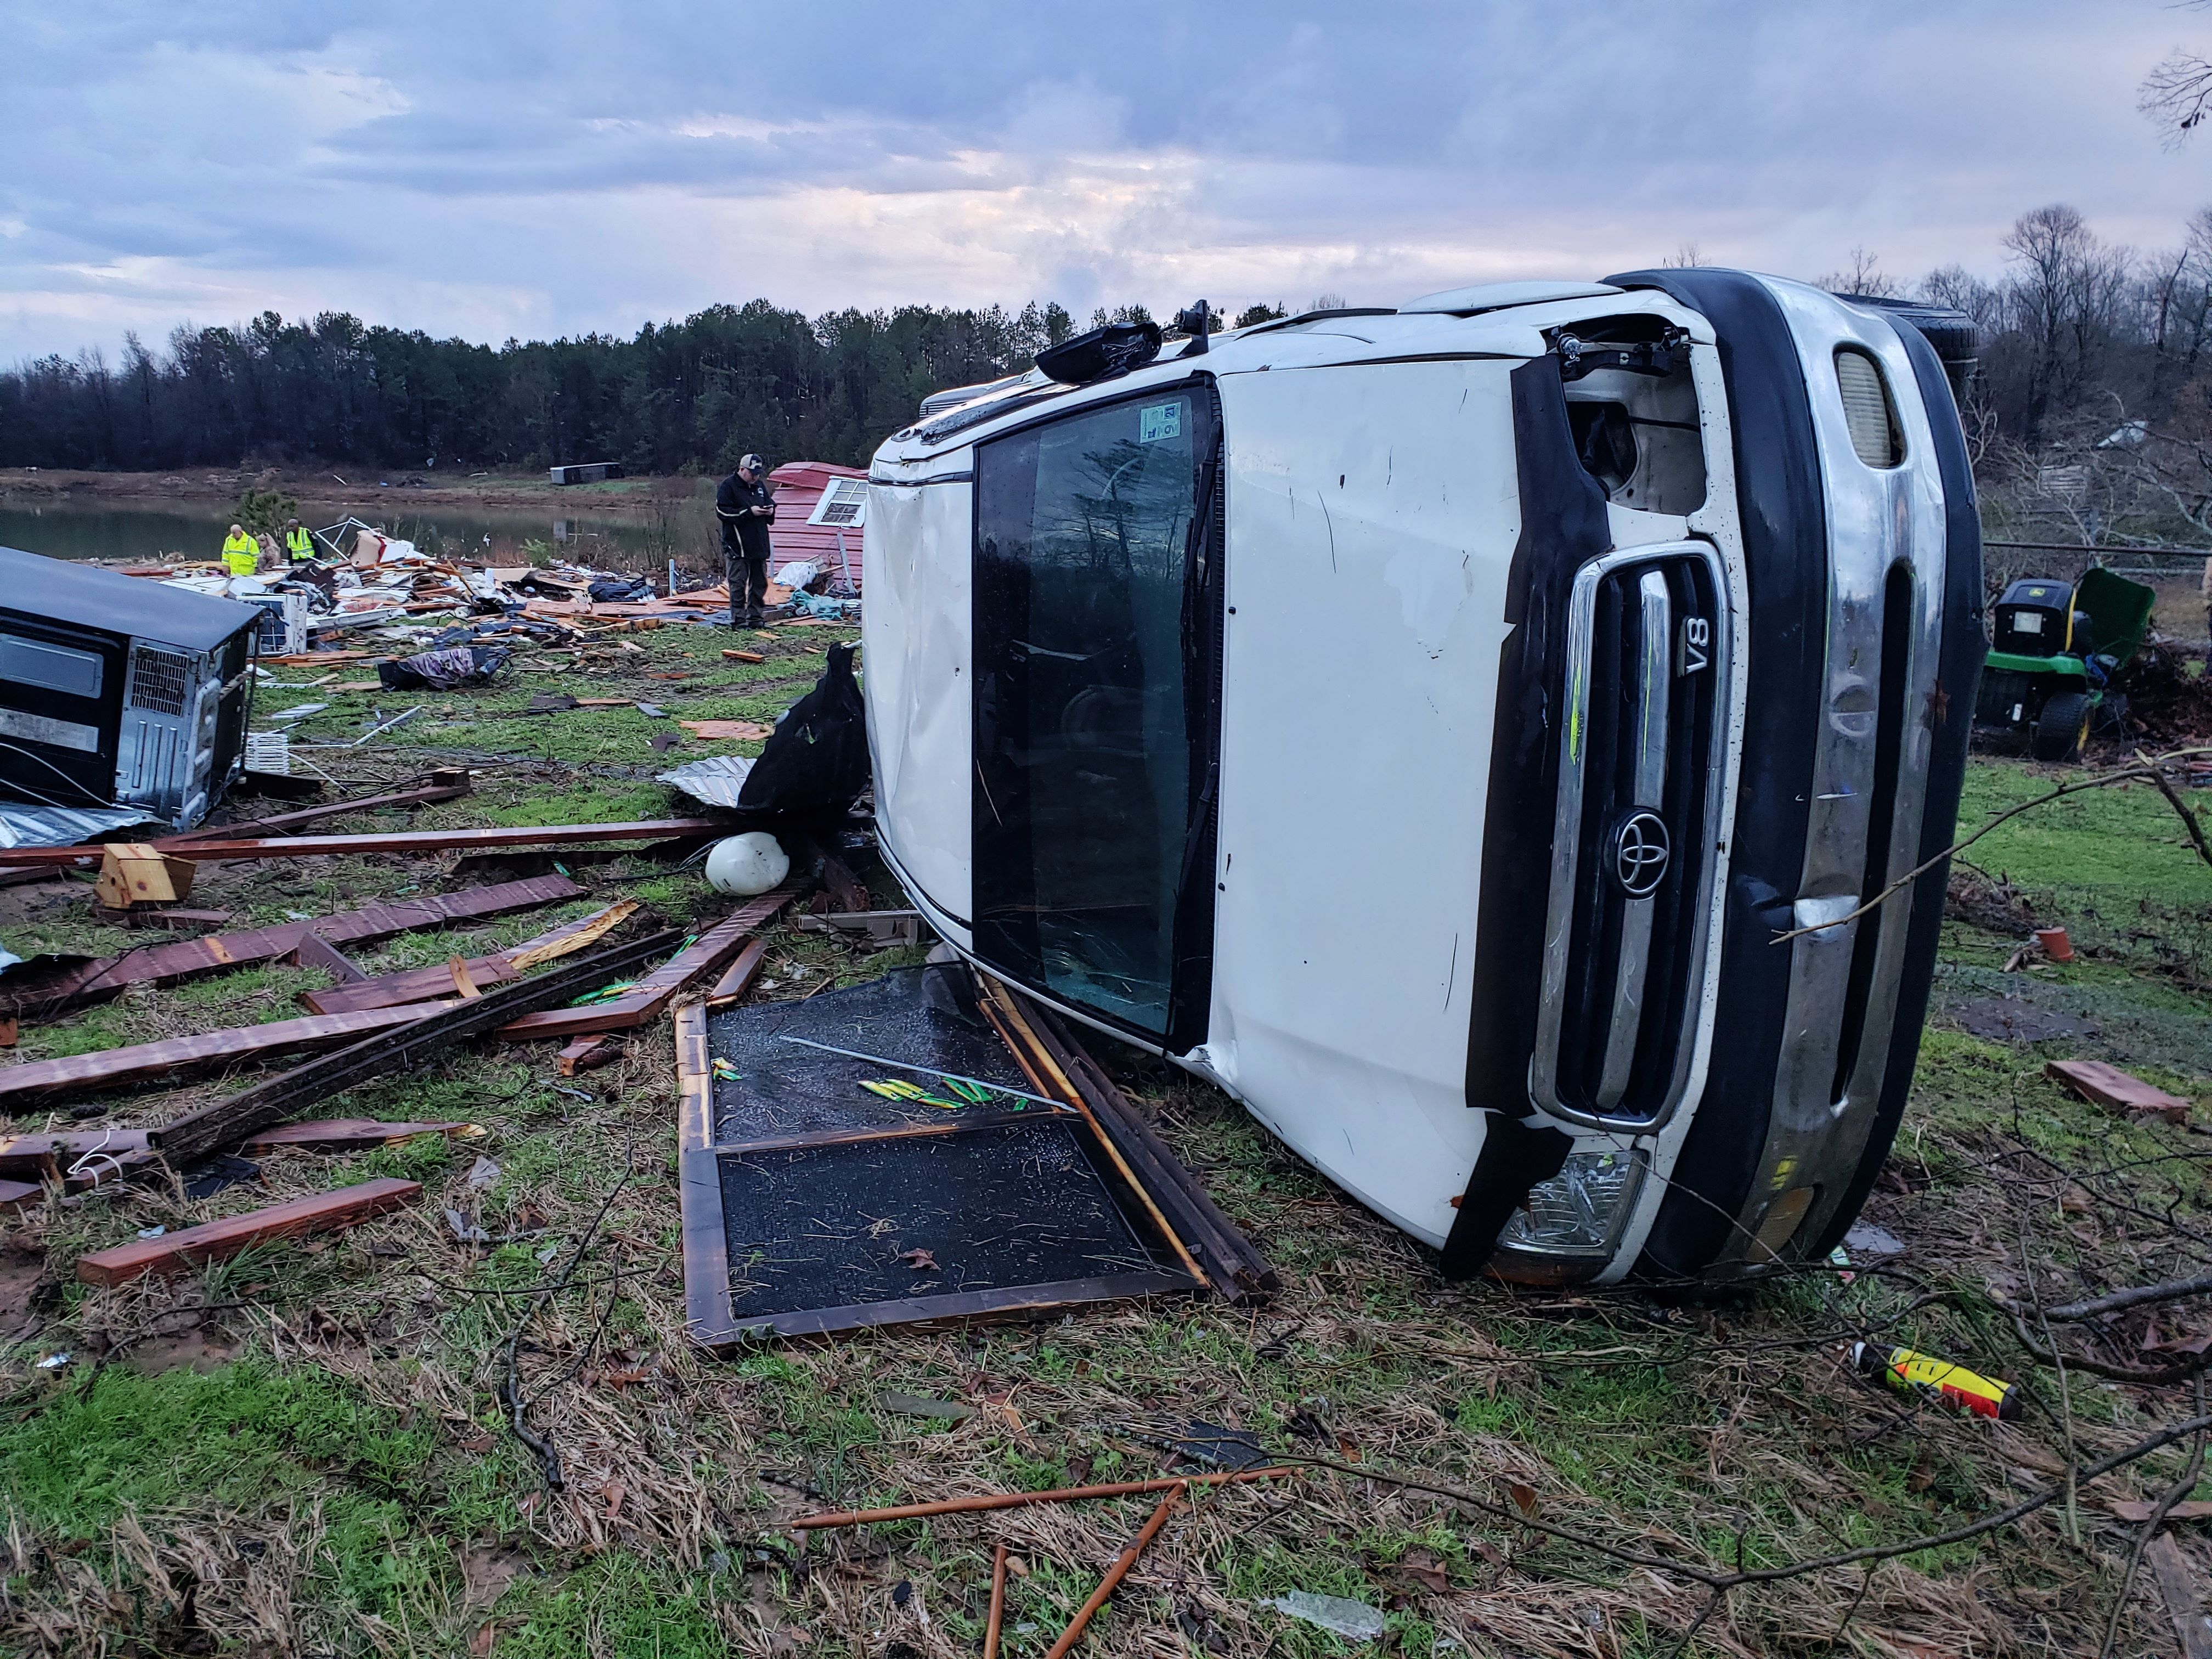 This photo provided by Bossier Parish Sheriff's Office shows damage from Friday nights severe weather, including the home of an elderly in Bossier Parish, La., on Jan. 11, 2020.